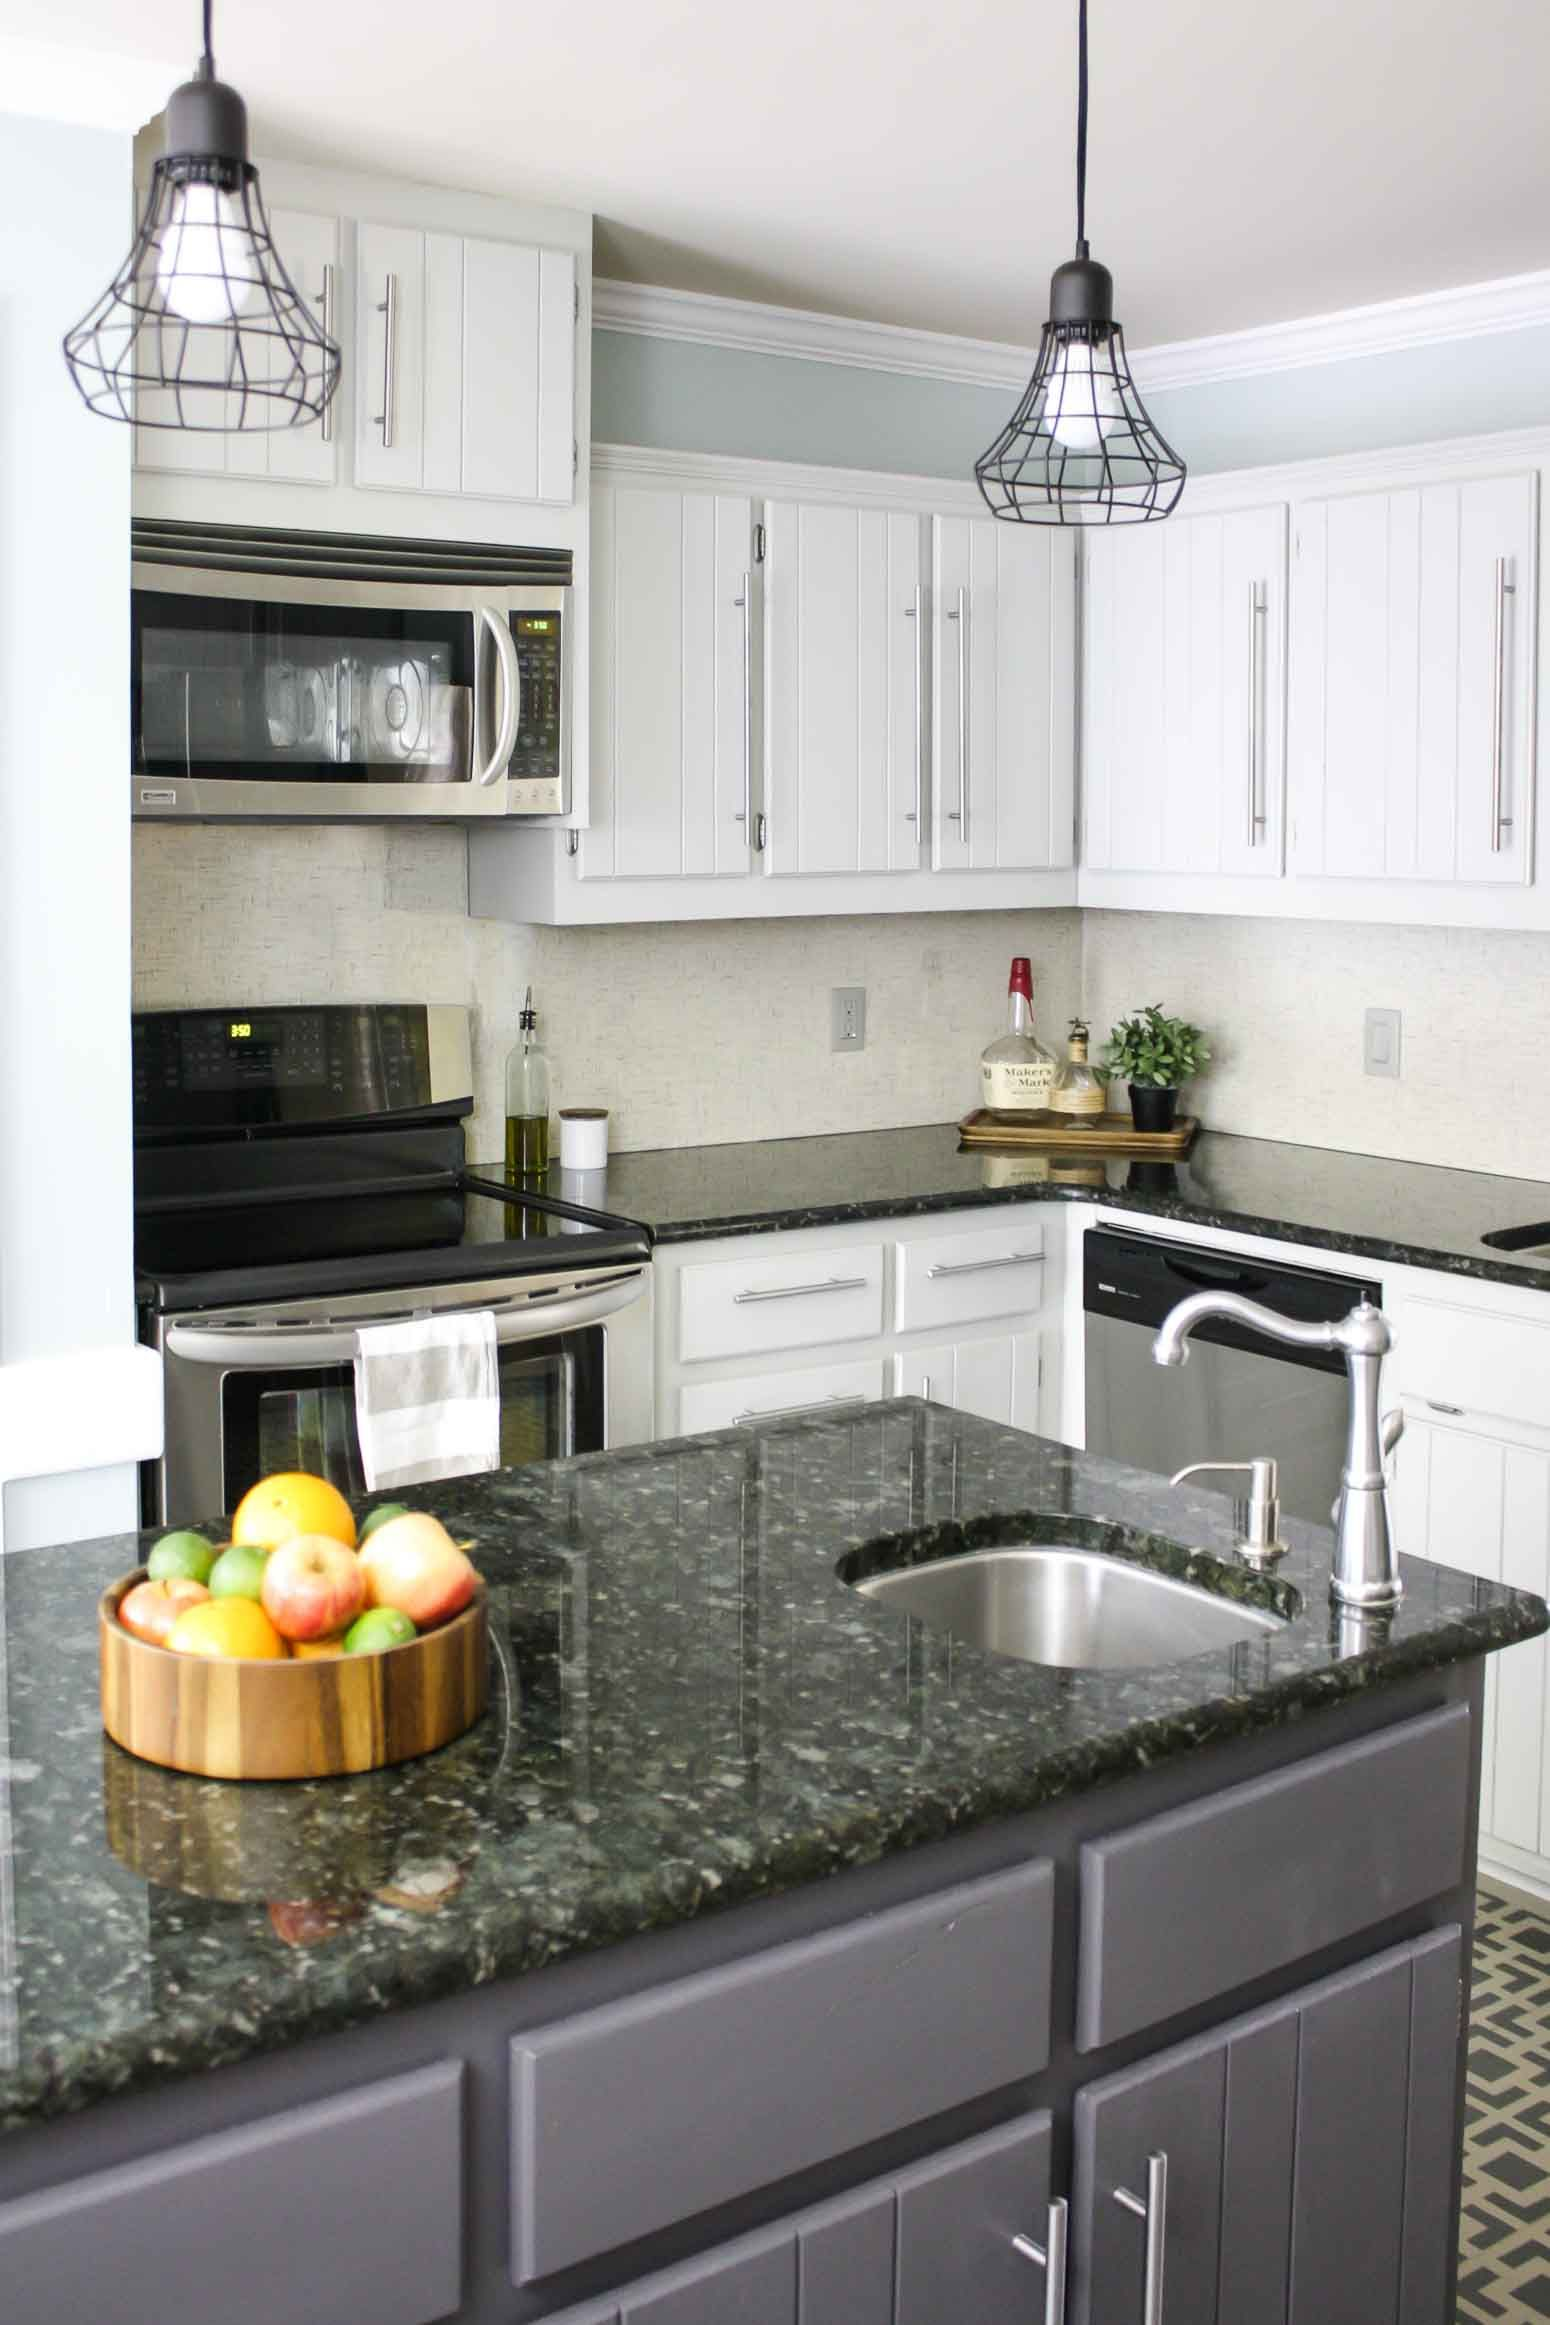 How to paint kitchen cabinets no paintingsanding tutorials